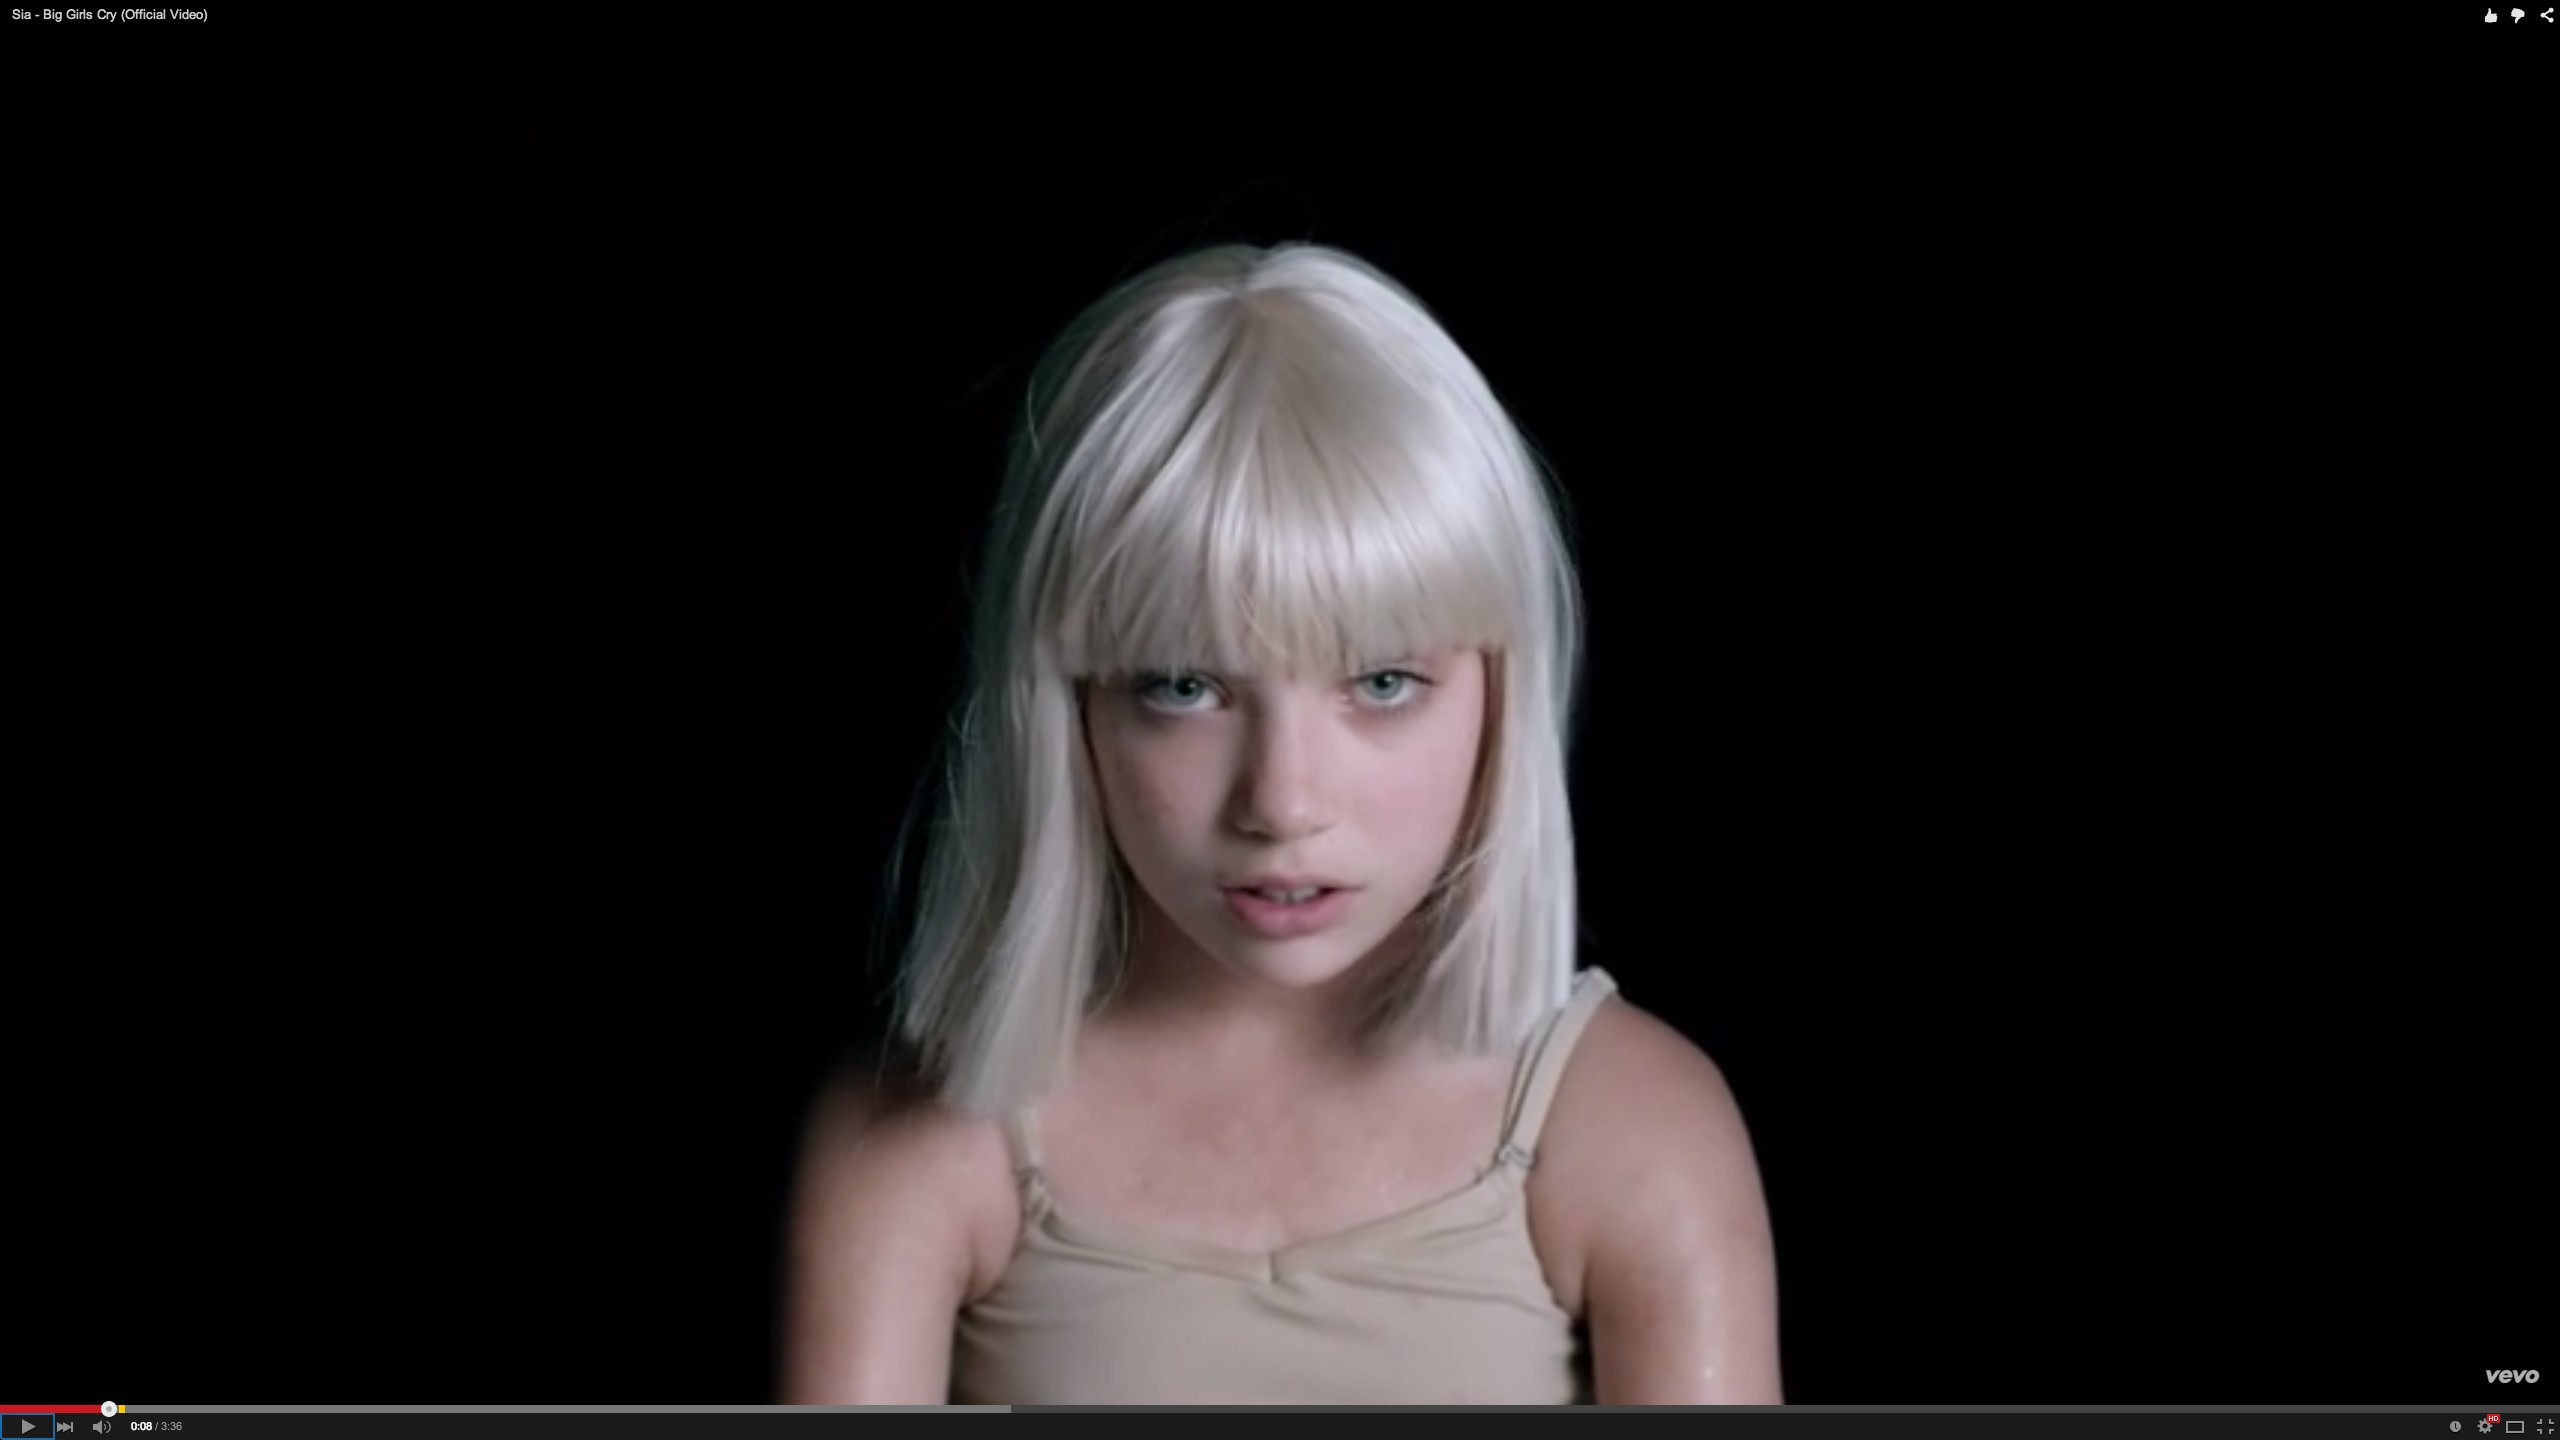 sia releases third video starring maddie ziegler - i-D